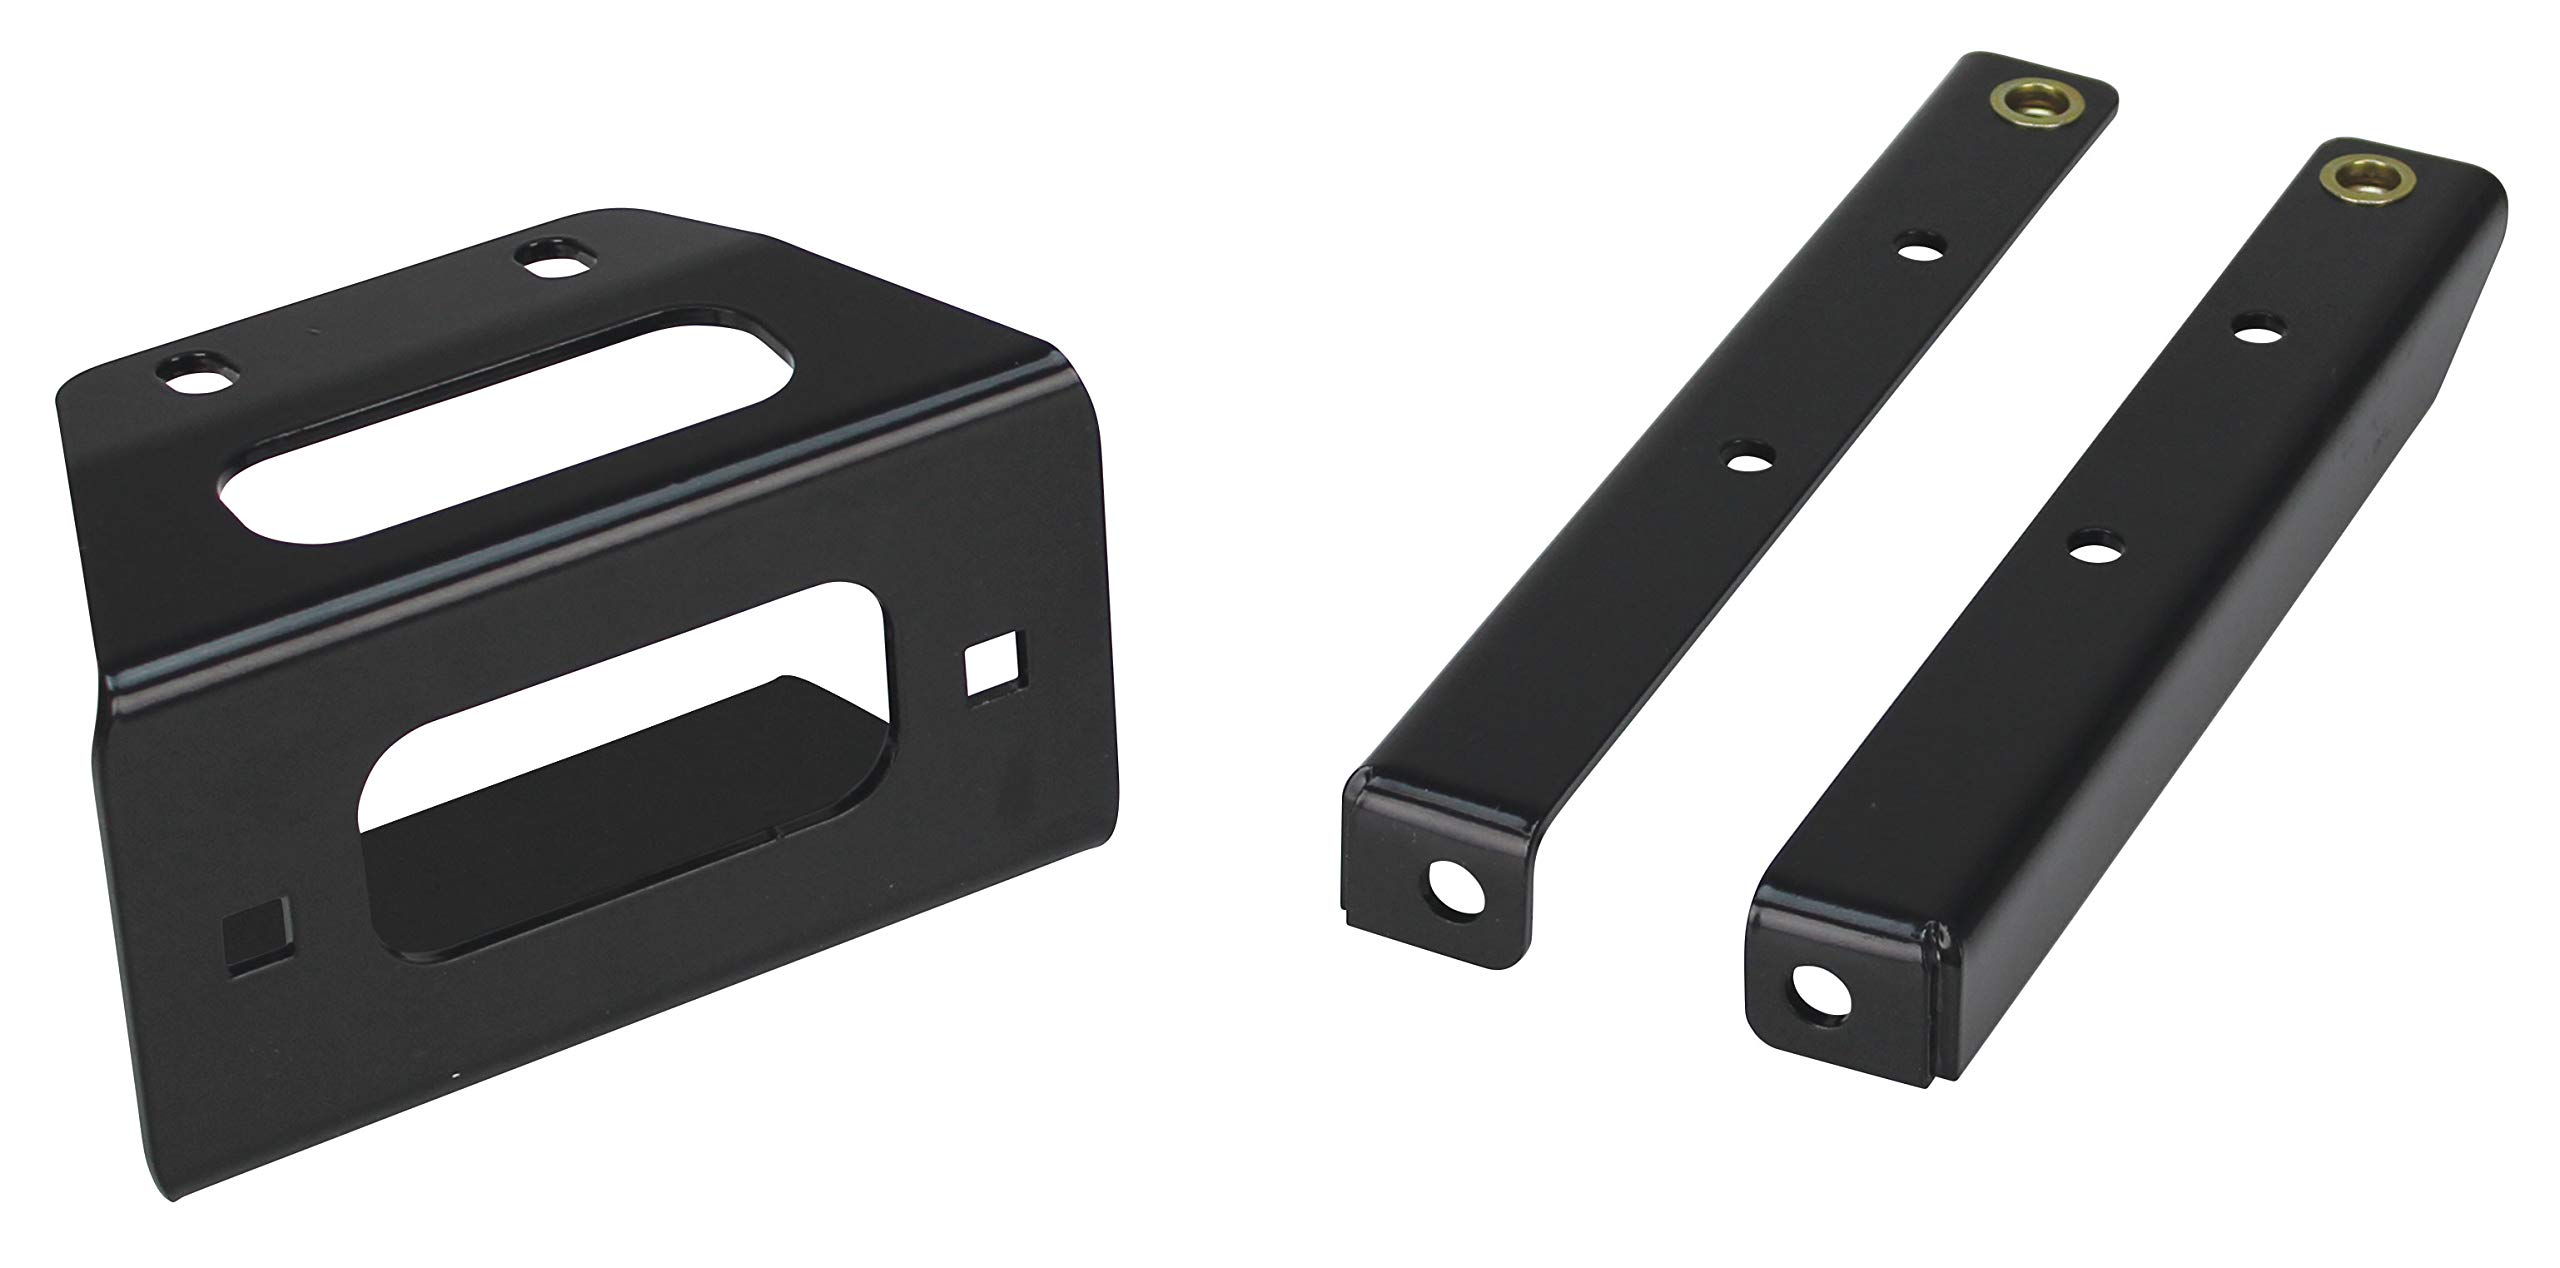 Extreme Max 5600.3169 ATV Winch Mount for Polaris RZR 570/800 by Extreme Max